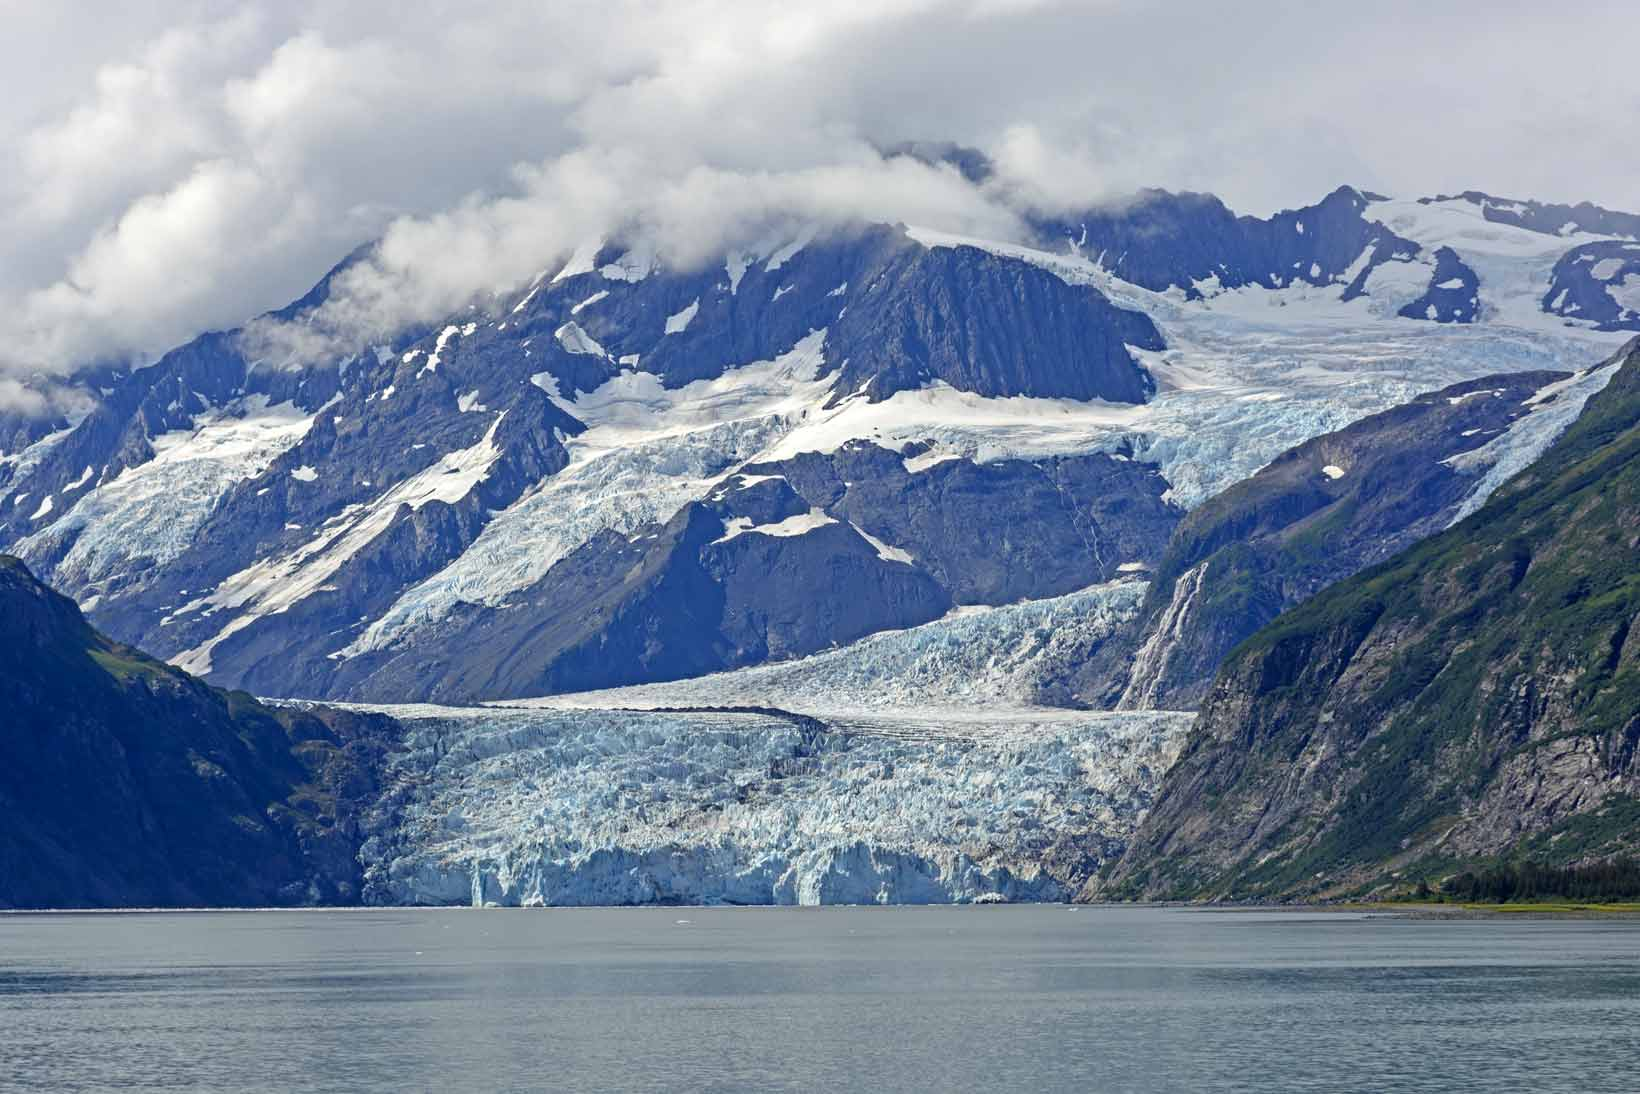 Surprise Glacier Coming out of the Mountains in Prince William Sound in Alaska